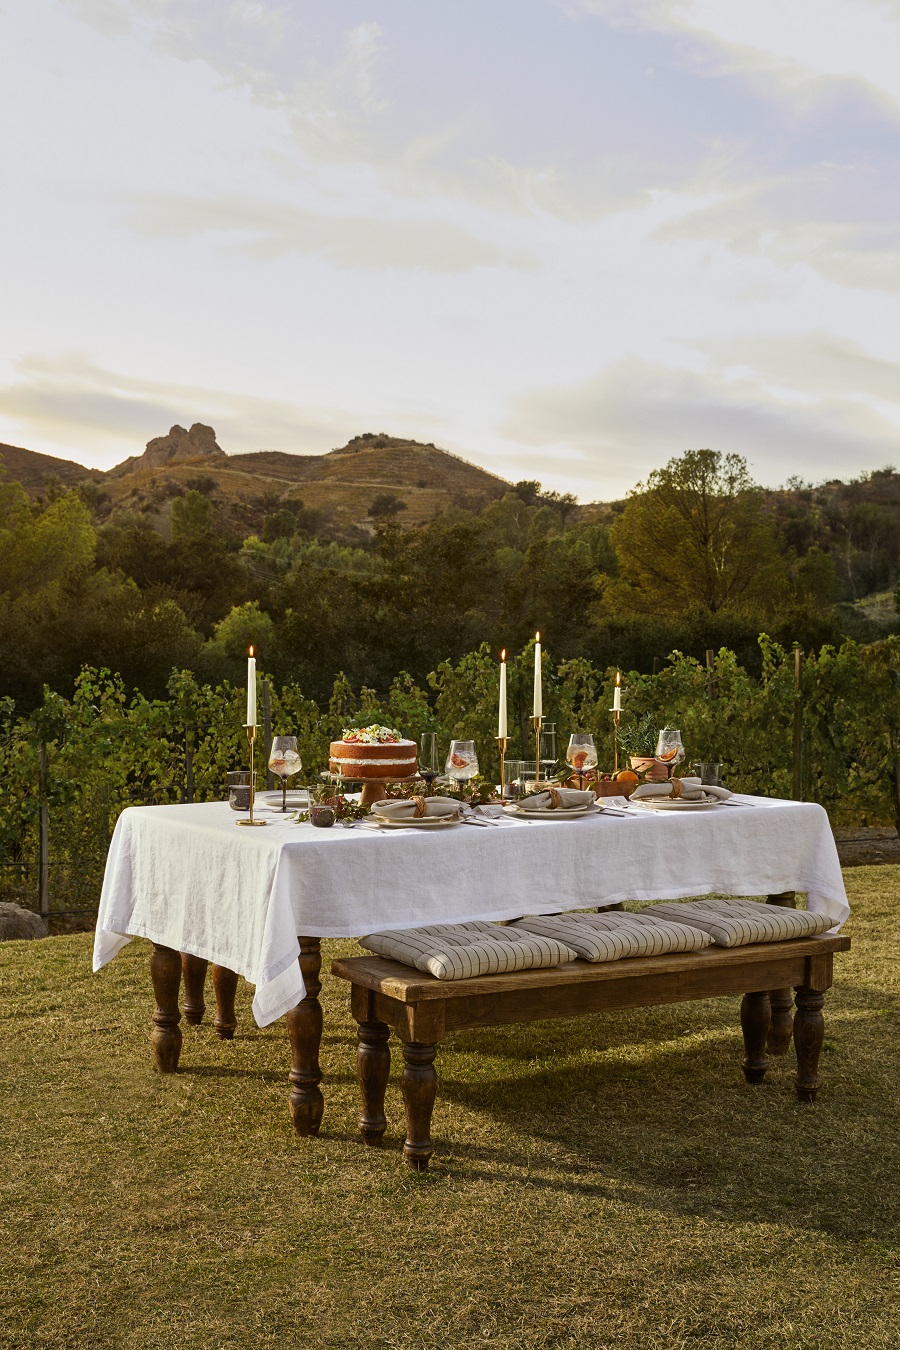 Outdoor Dining Inspiration from H&M Home